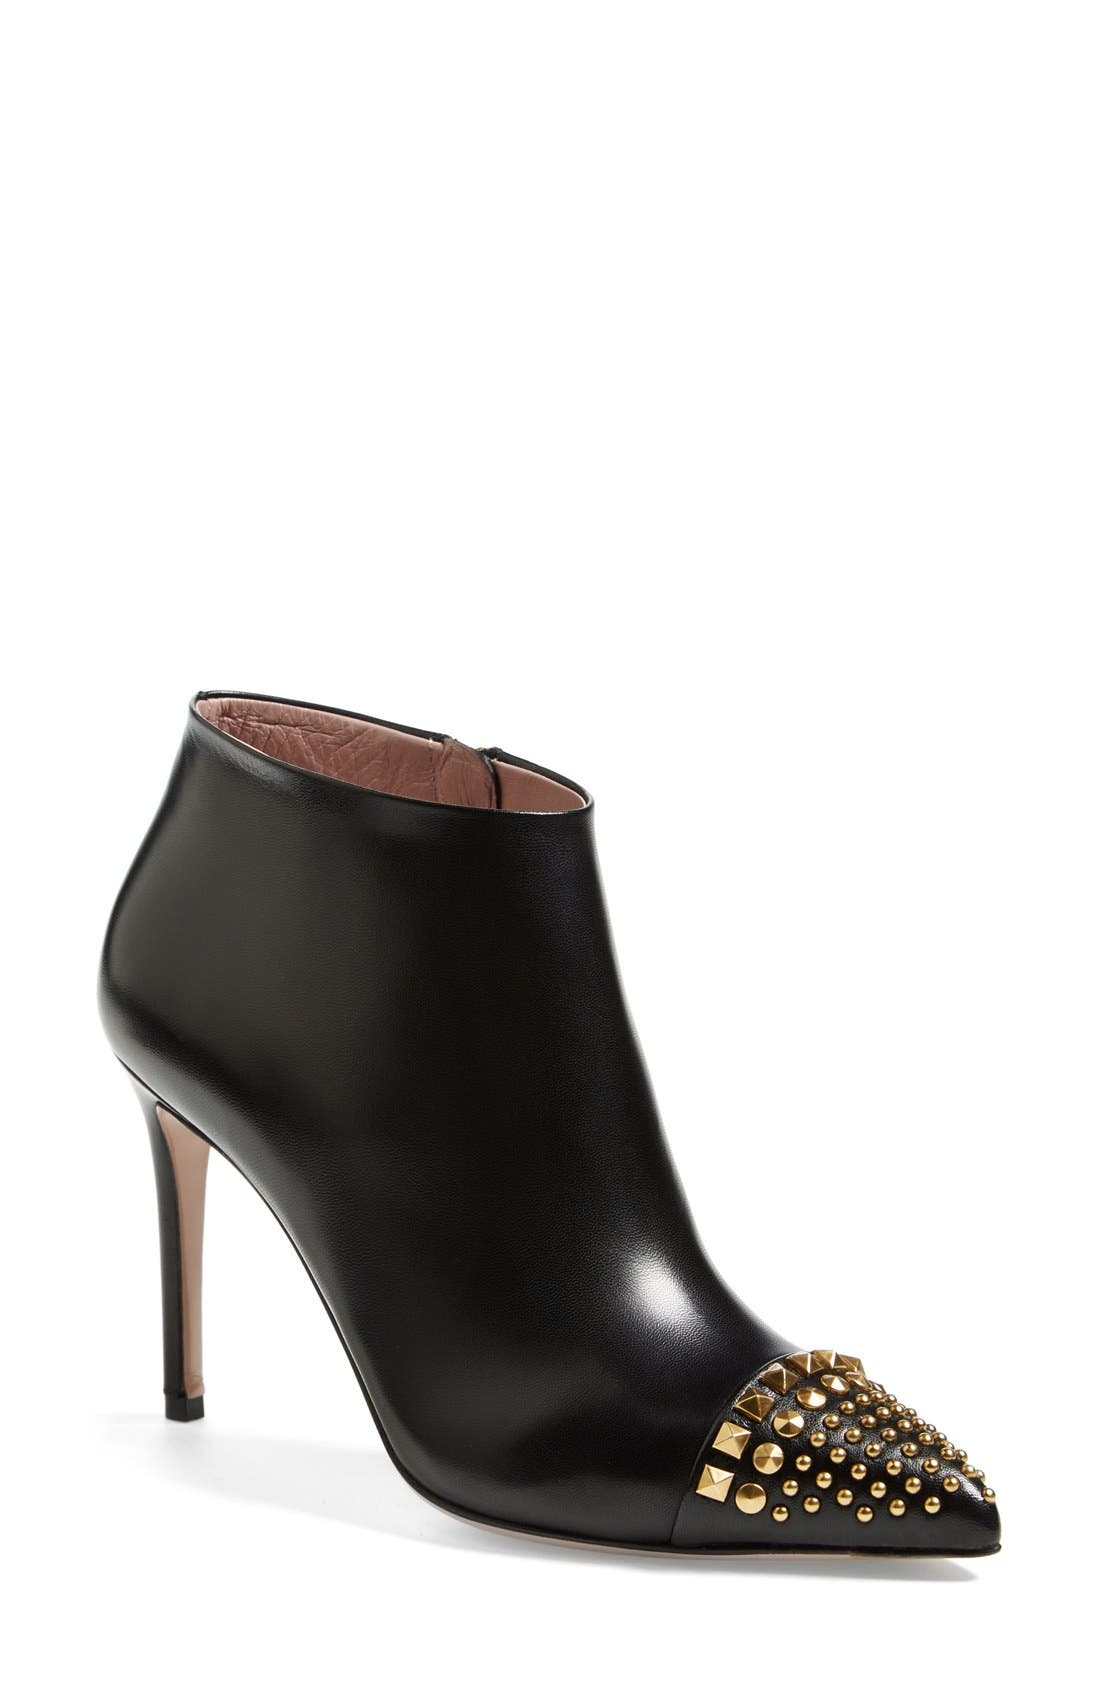 Main Image - Gucci 'Coline' Studded Cap Toe Bootie (Women)